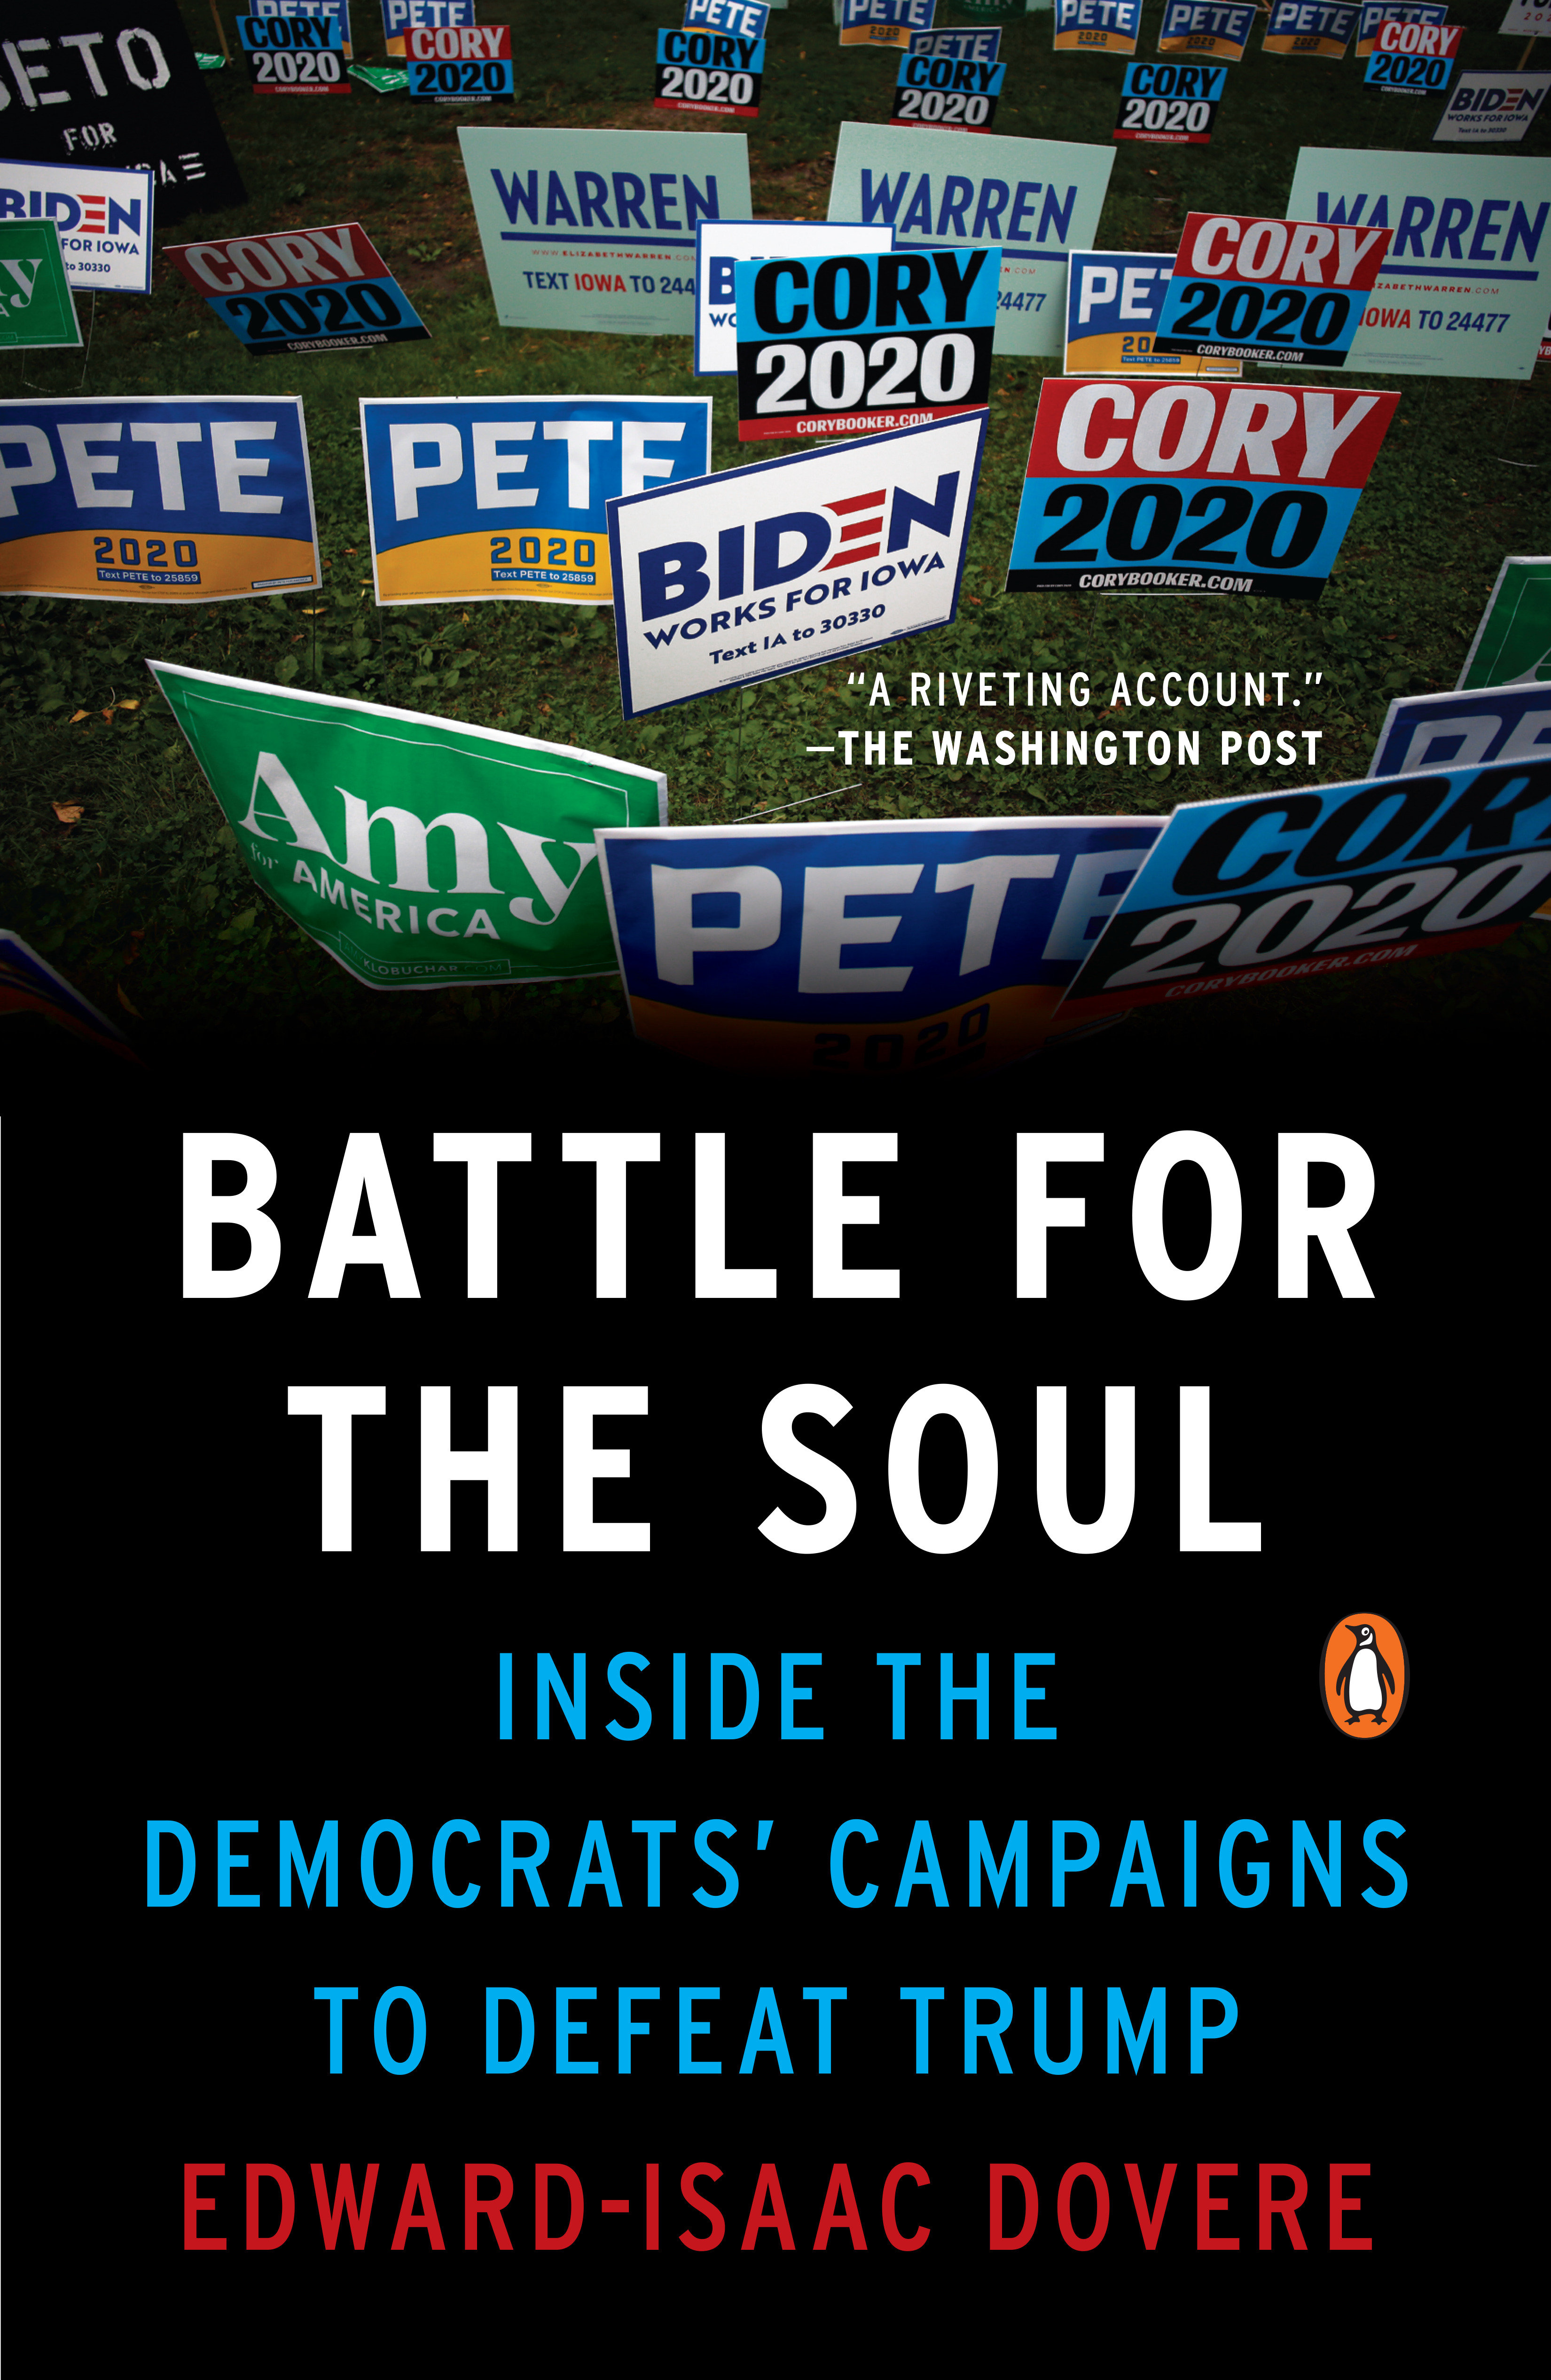 Battle for the Soul Inside the Democrats' Campaigns to Defeat Trump